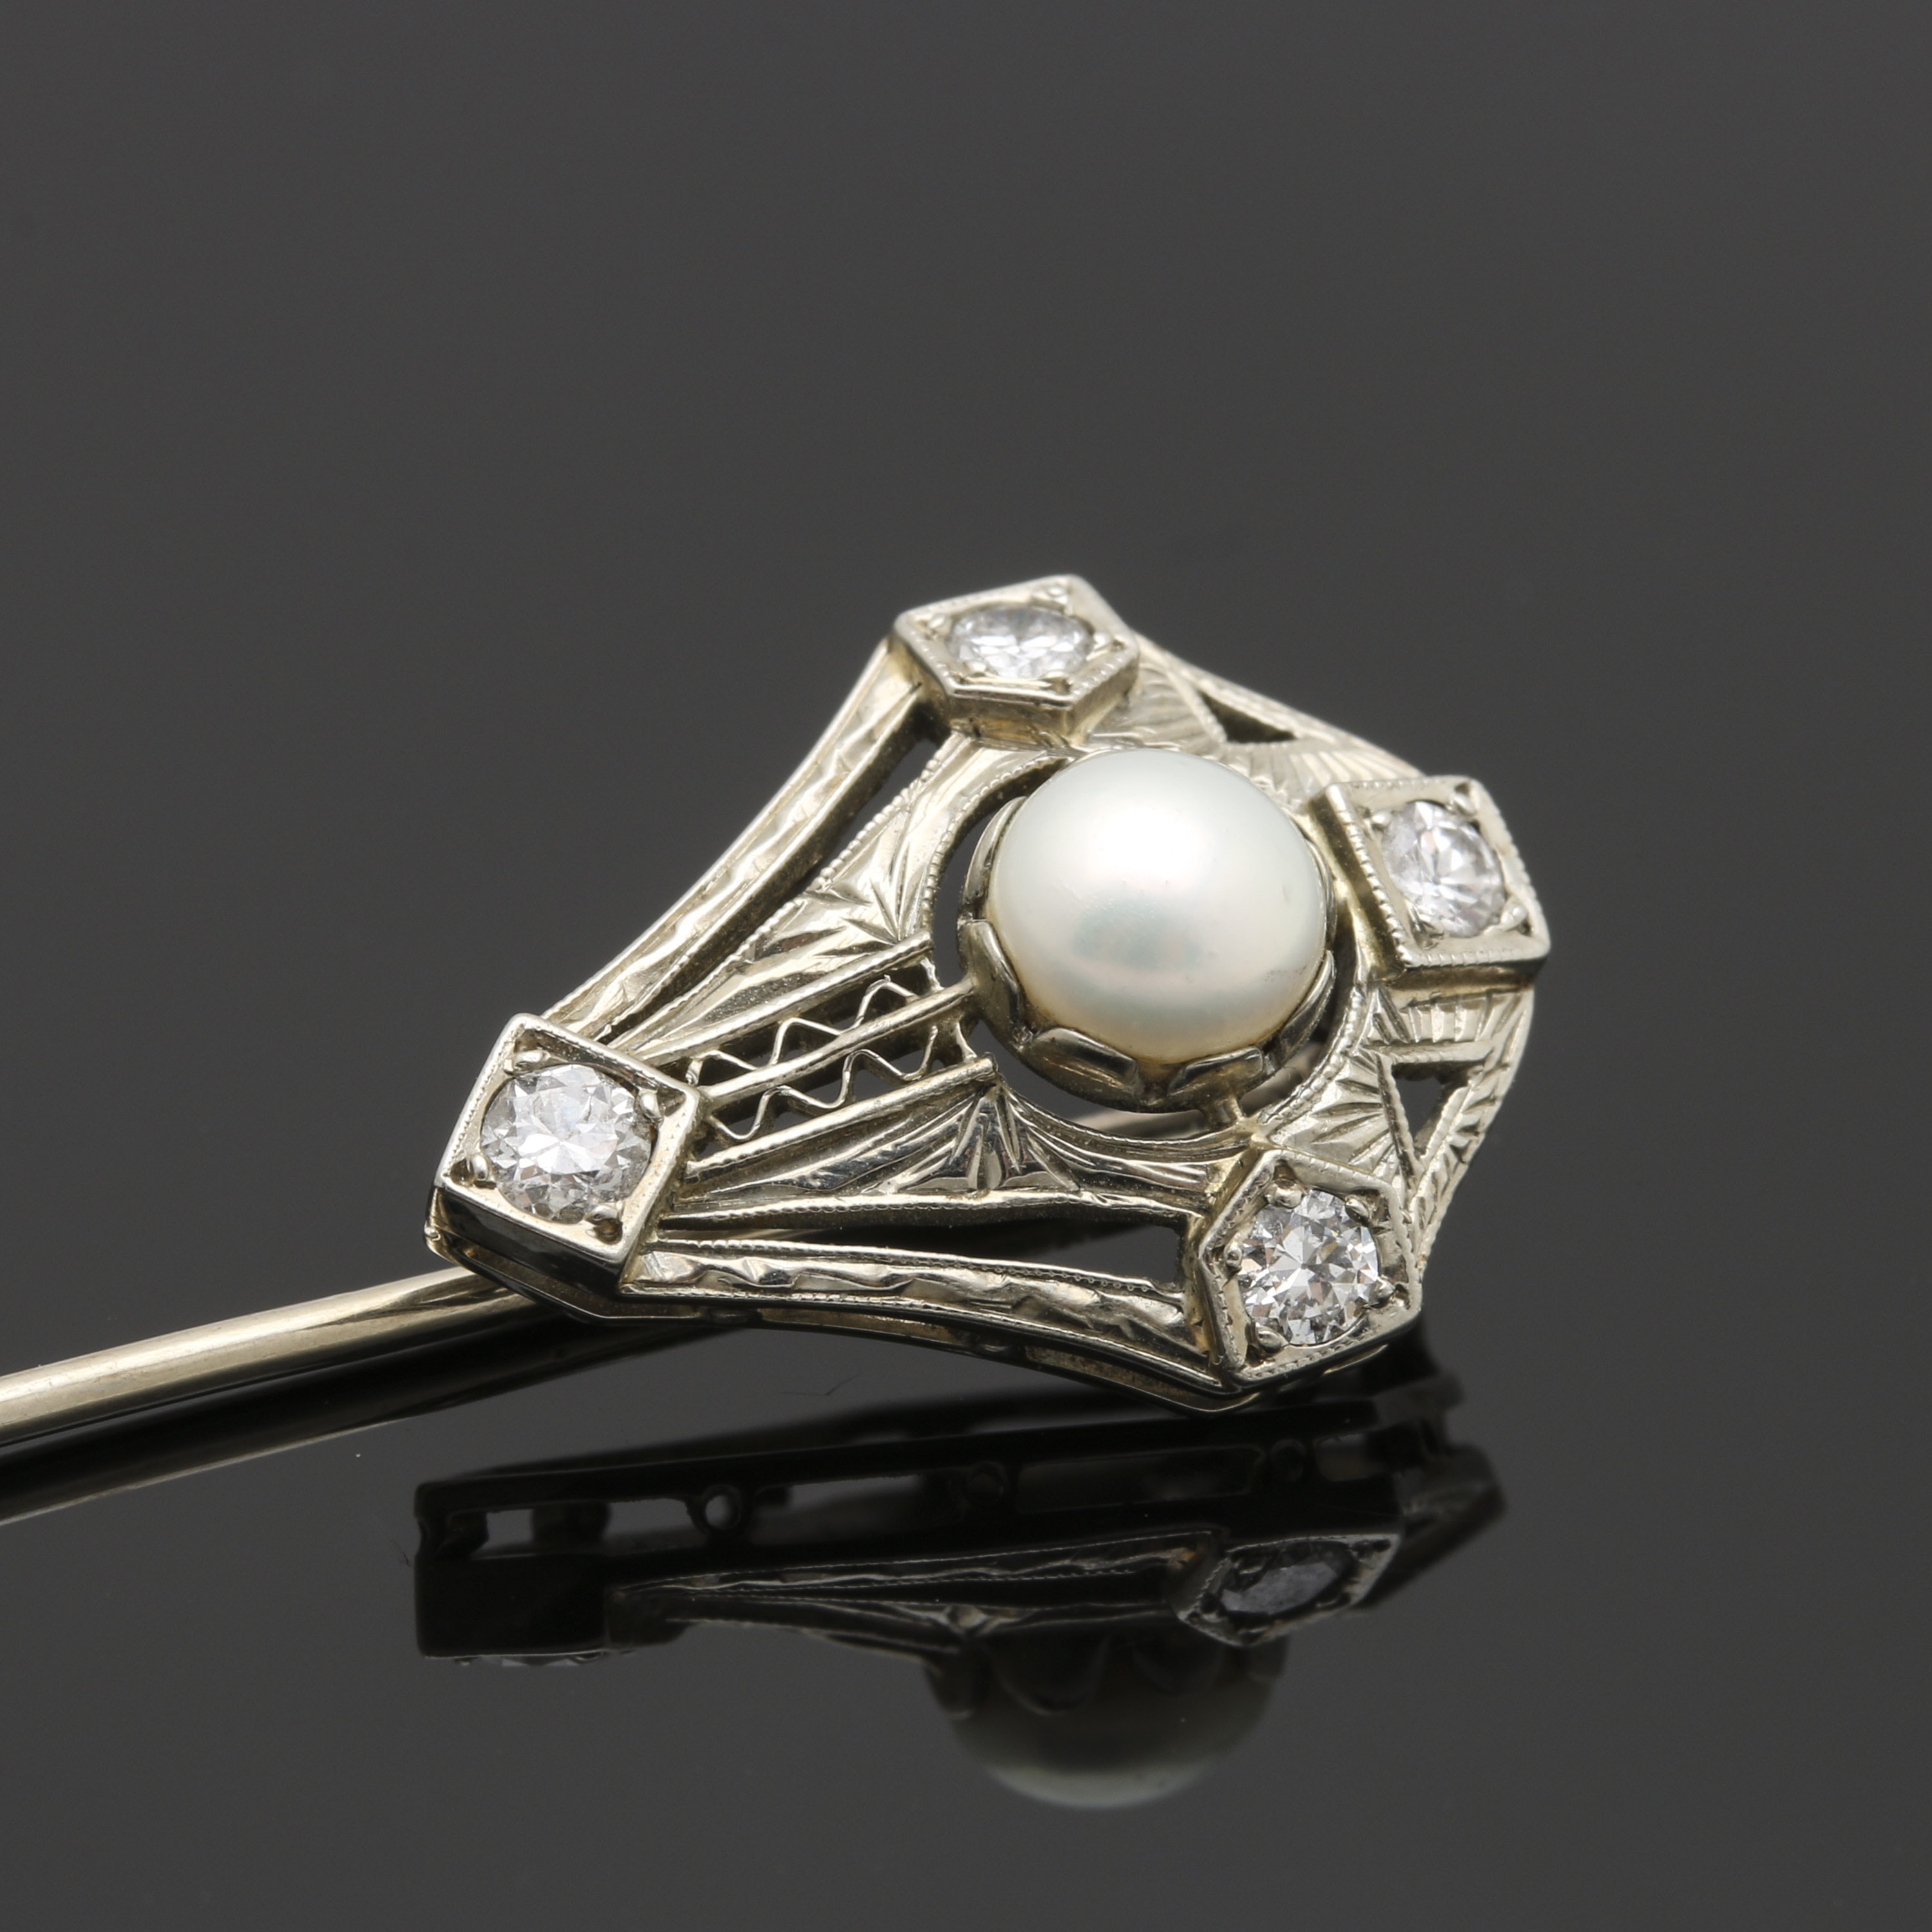 Late Edwardian 18K White Gold and Platinum Cultured Pearl and Diamond Stick Pin